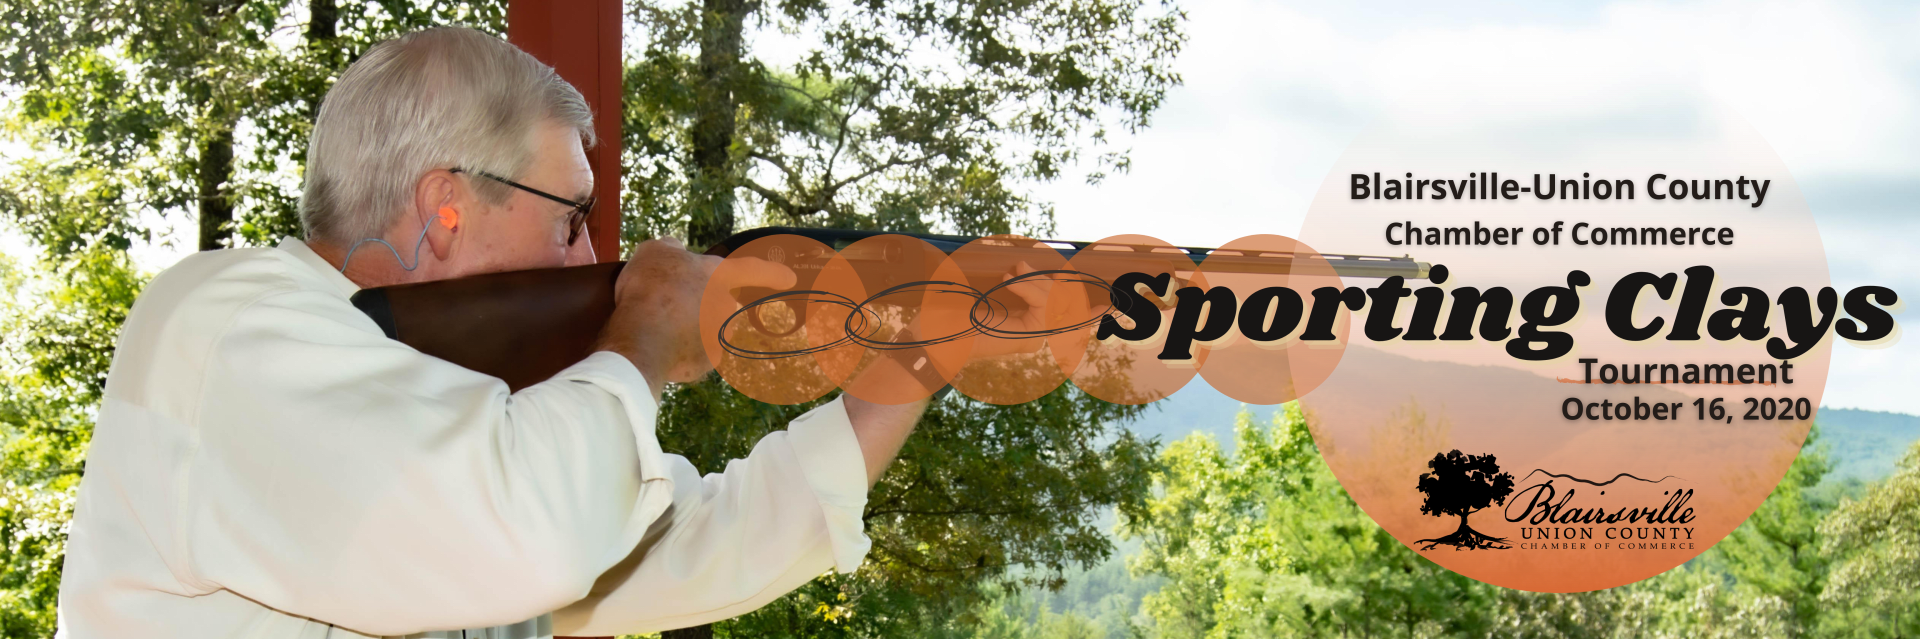 2020-Sporting-Clays-Website-Banner-with-Sponsors-w1920.png